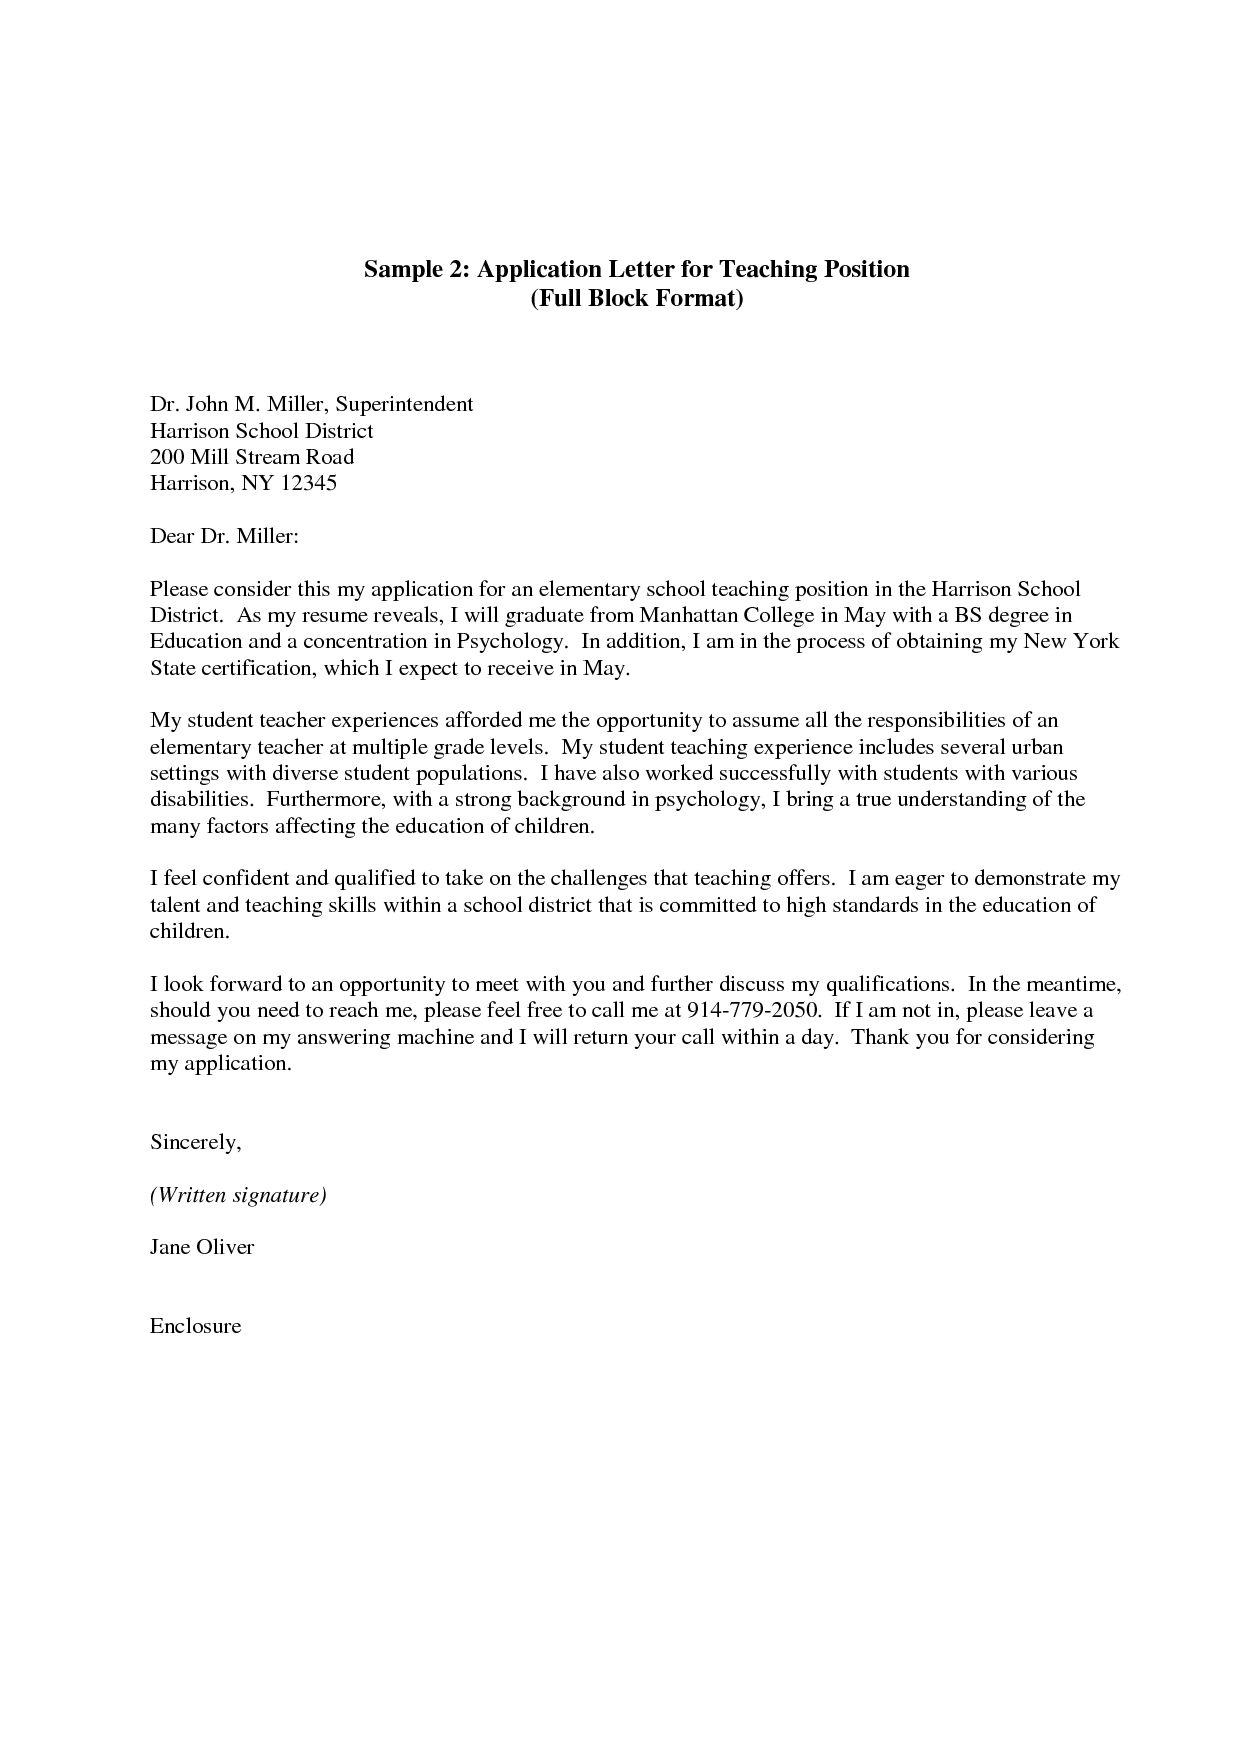 pin on cover letter designs resume and for teaching position using google docs college Resume Resume And Cover Letter For Teaching Position